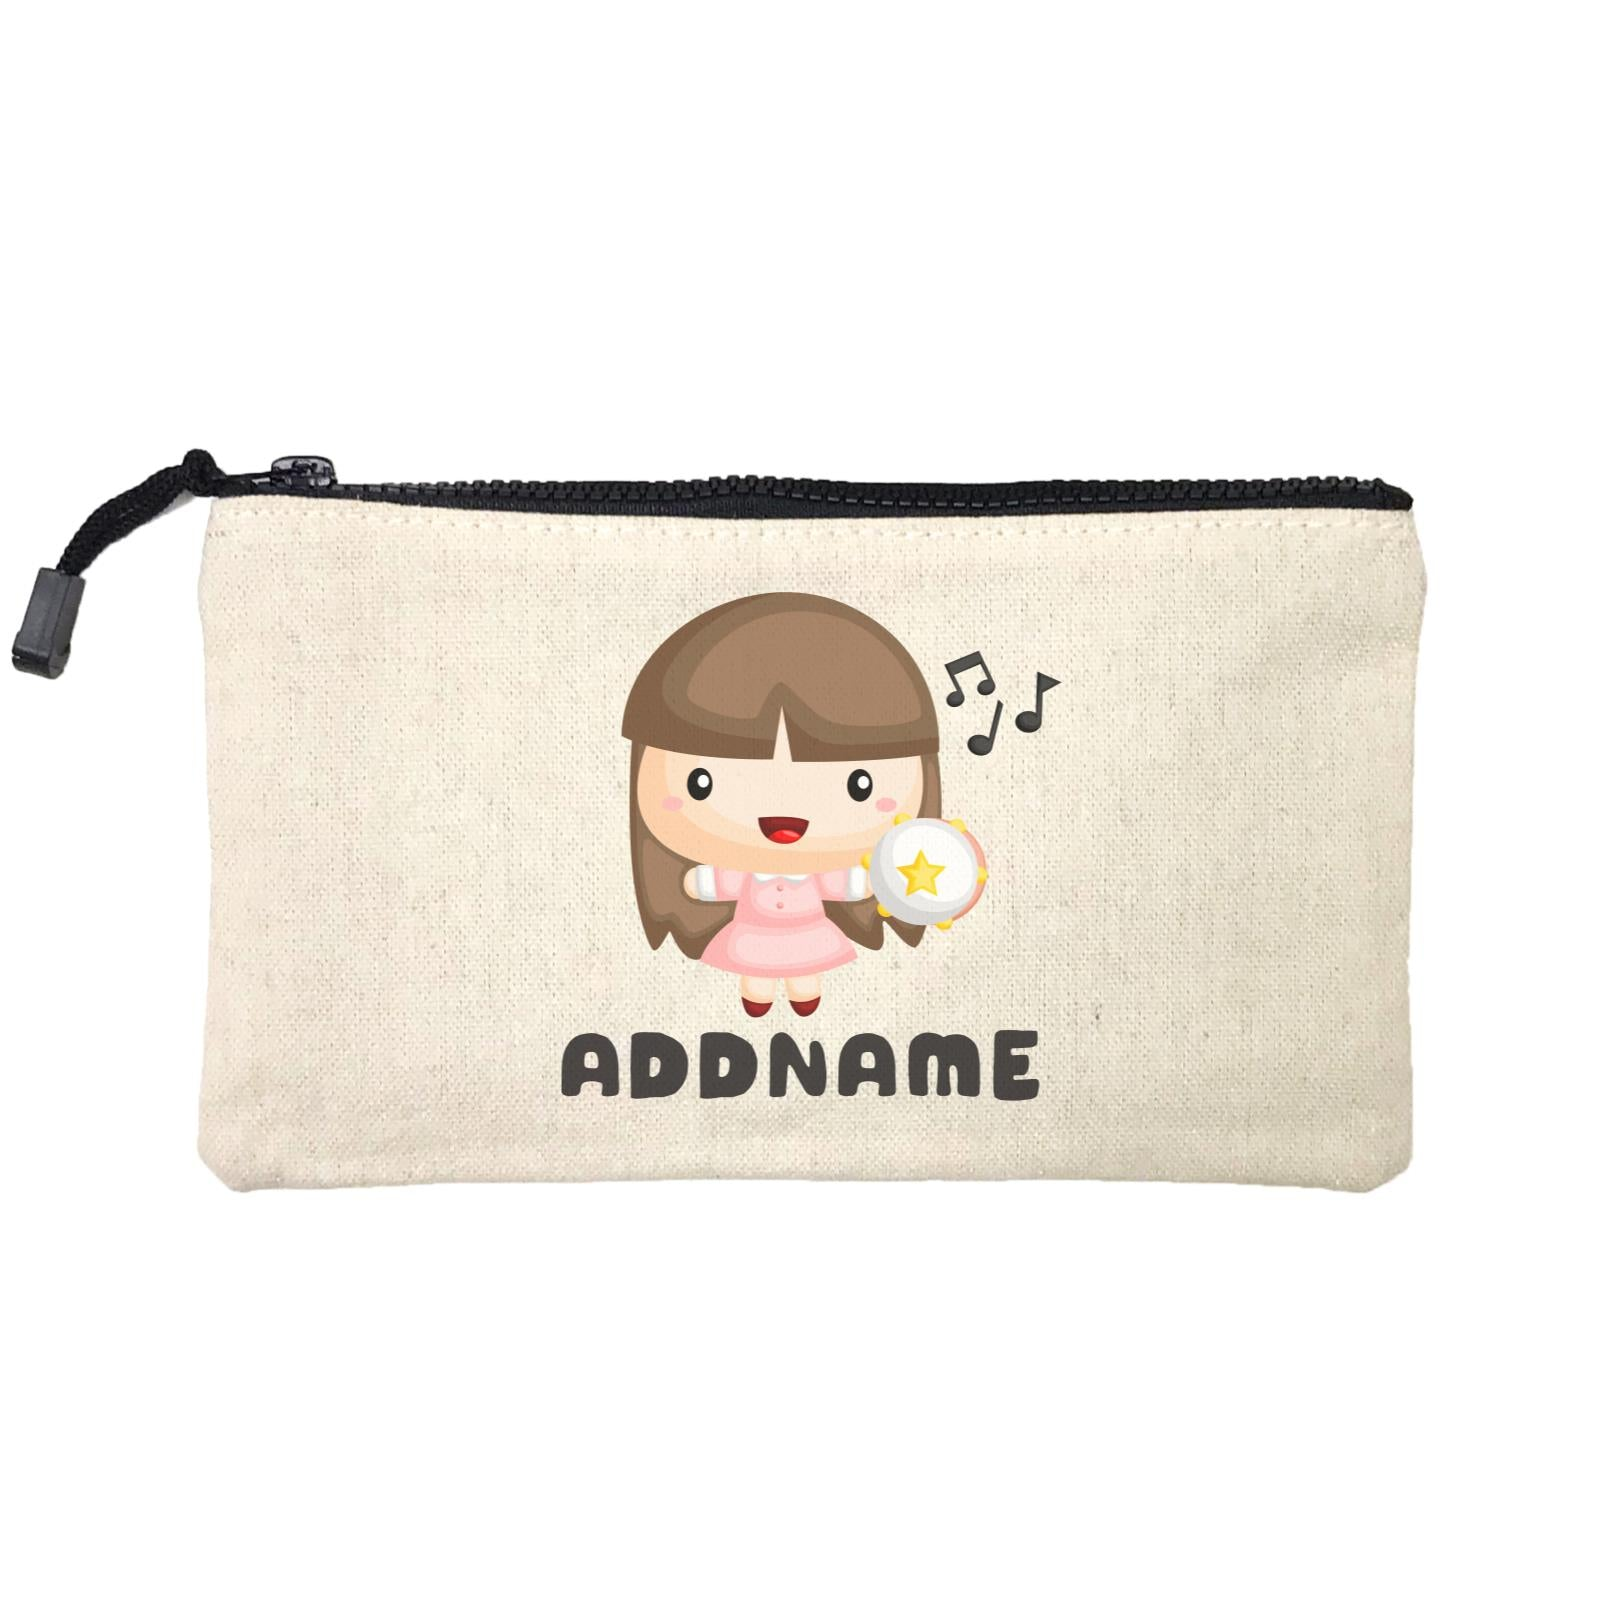 Birthday Music Band Girl Playing Tambourine Addname Mini Accessories Stationery Pouch